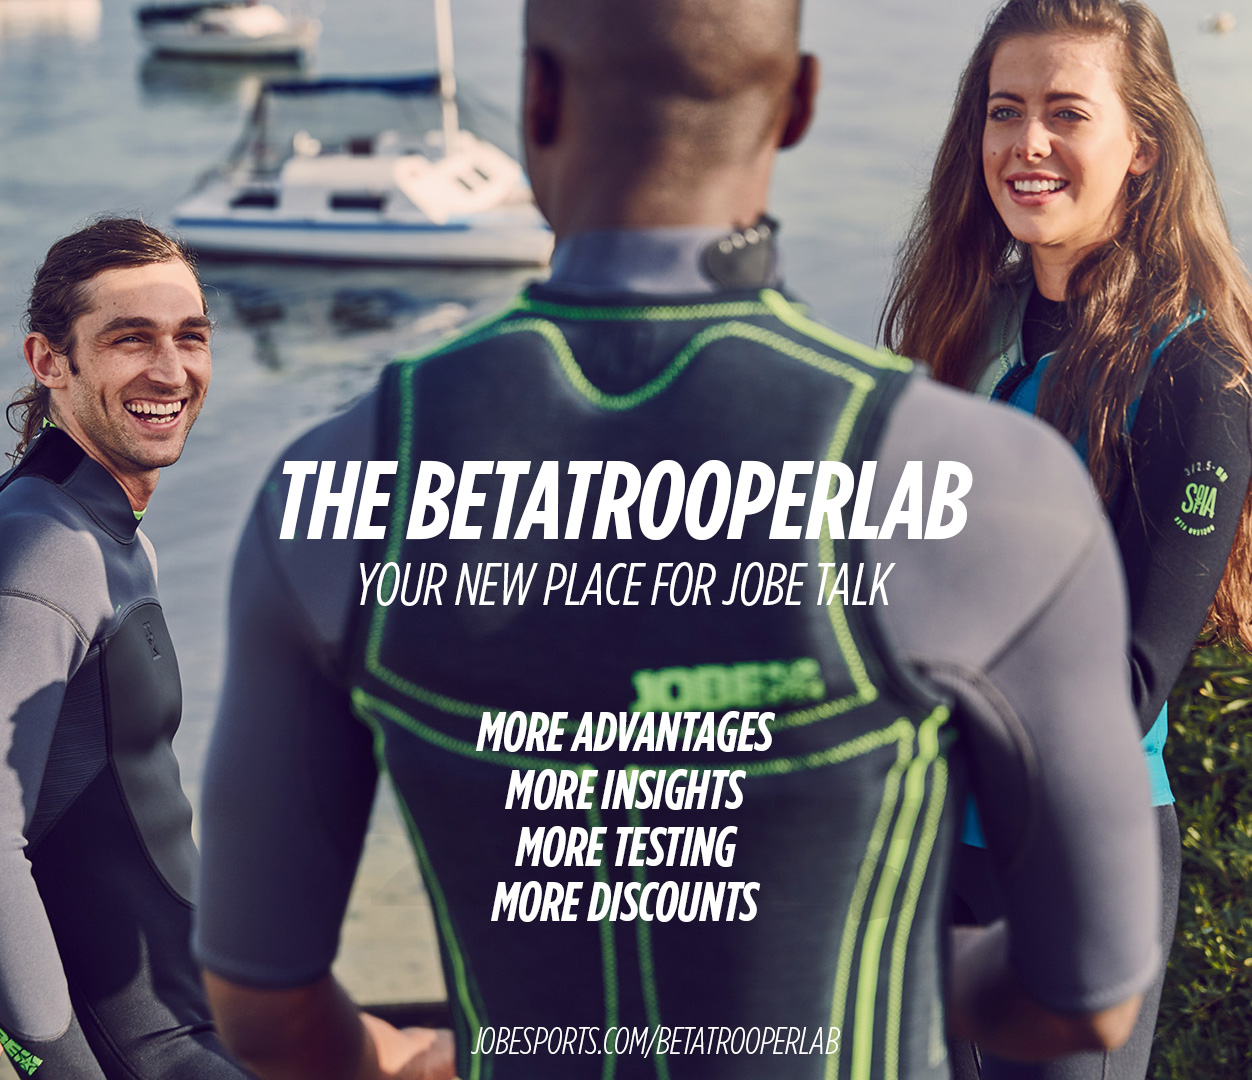 The Betatrooper lab